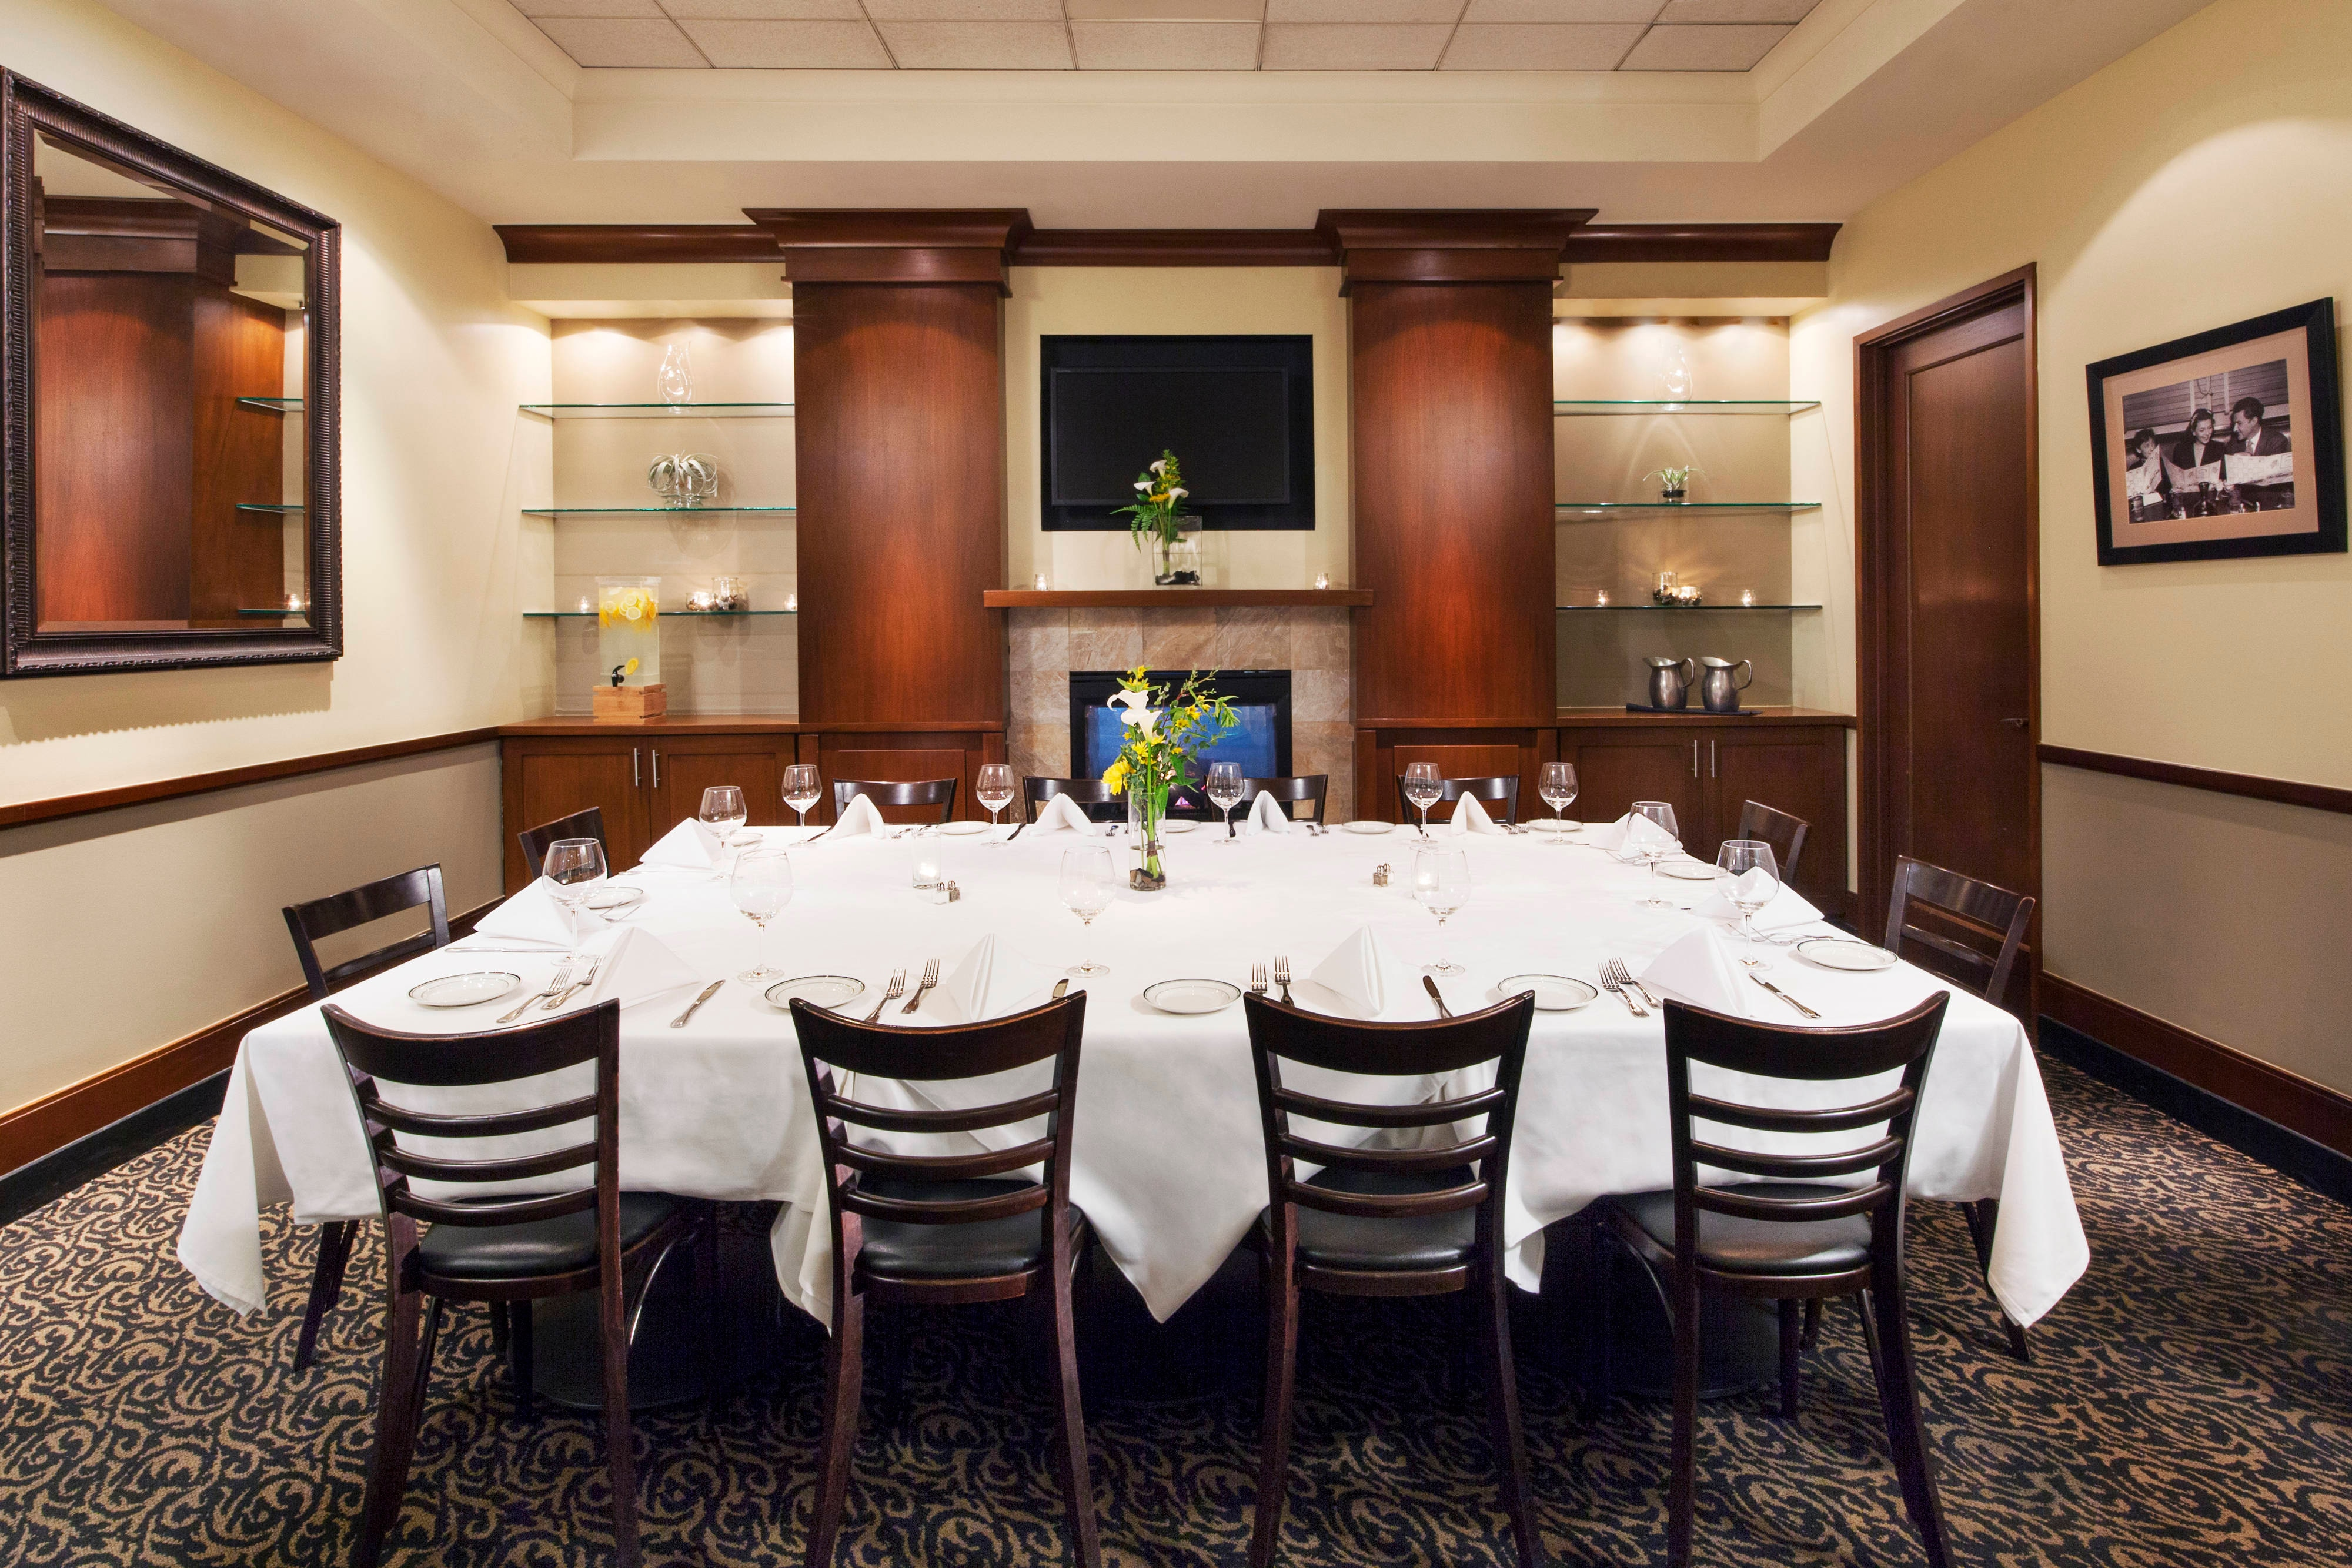 Grill Room with formal seating for 10 clients.